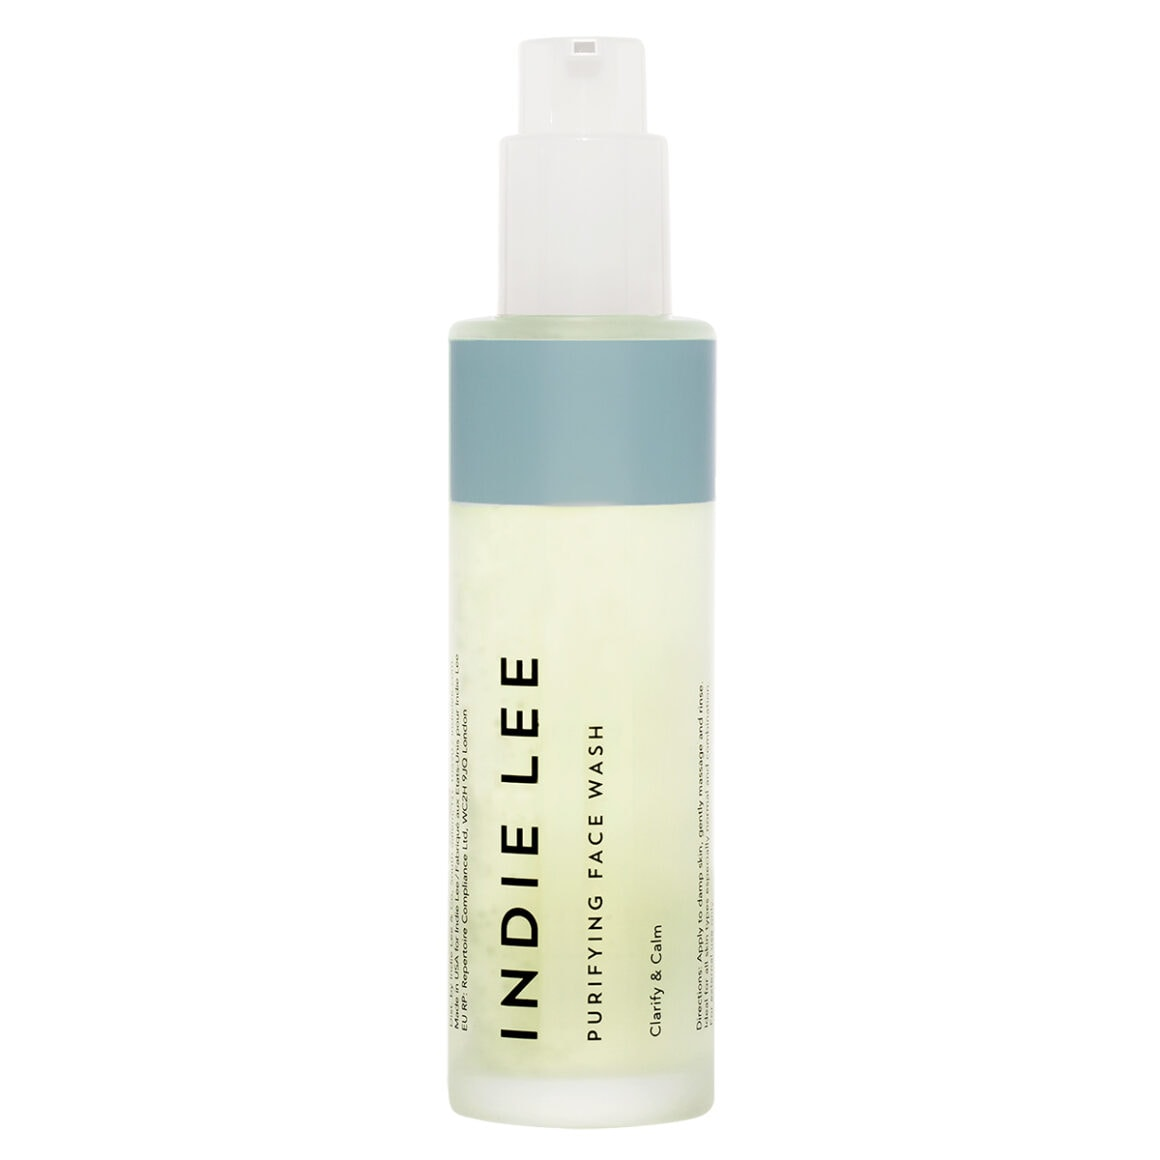 Indie Lee Purifying Face Wash for oily and combination skin.